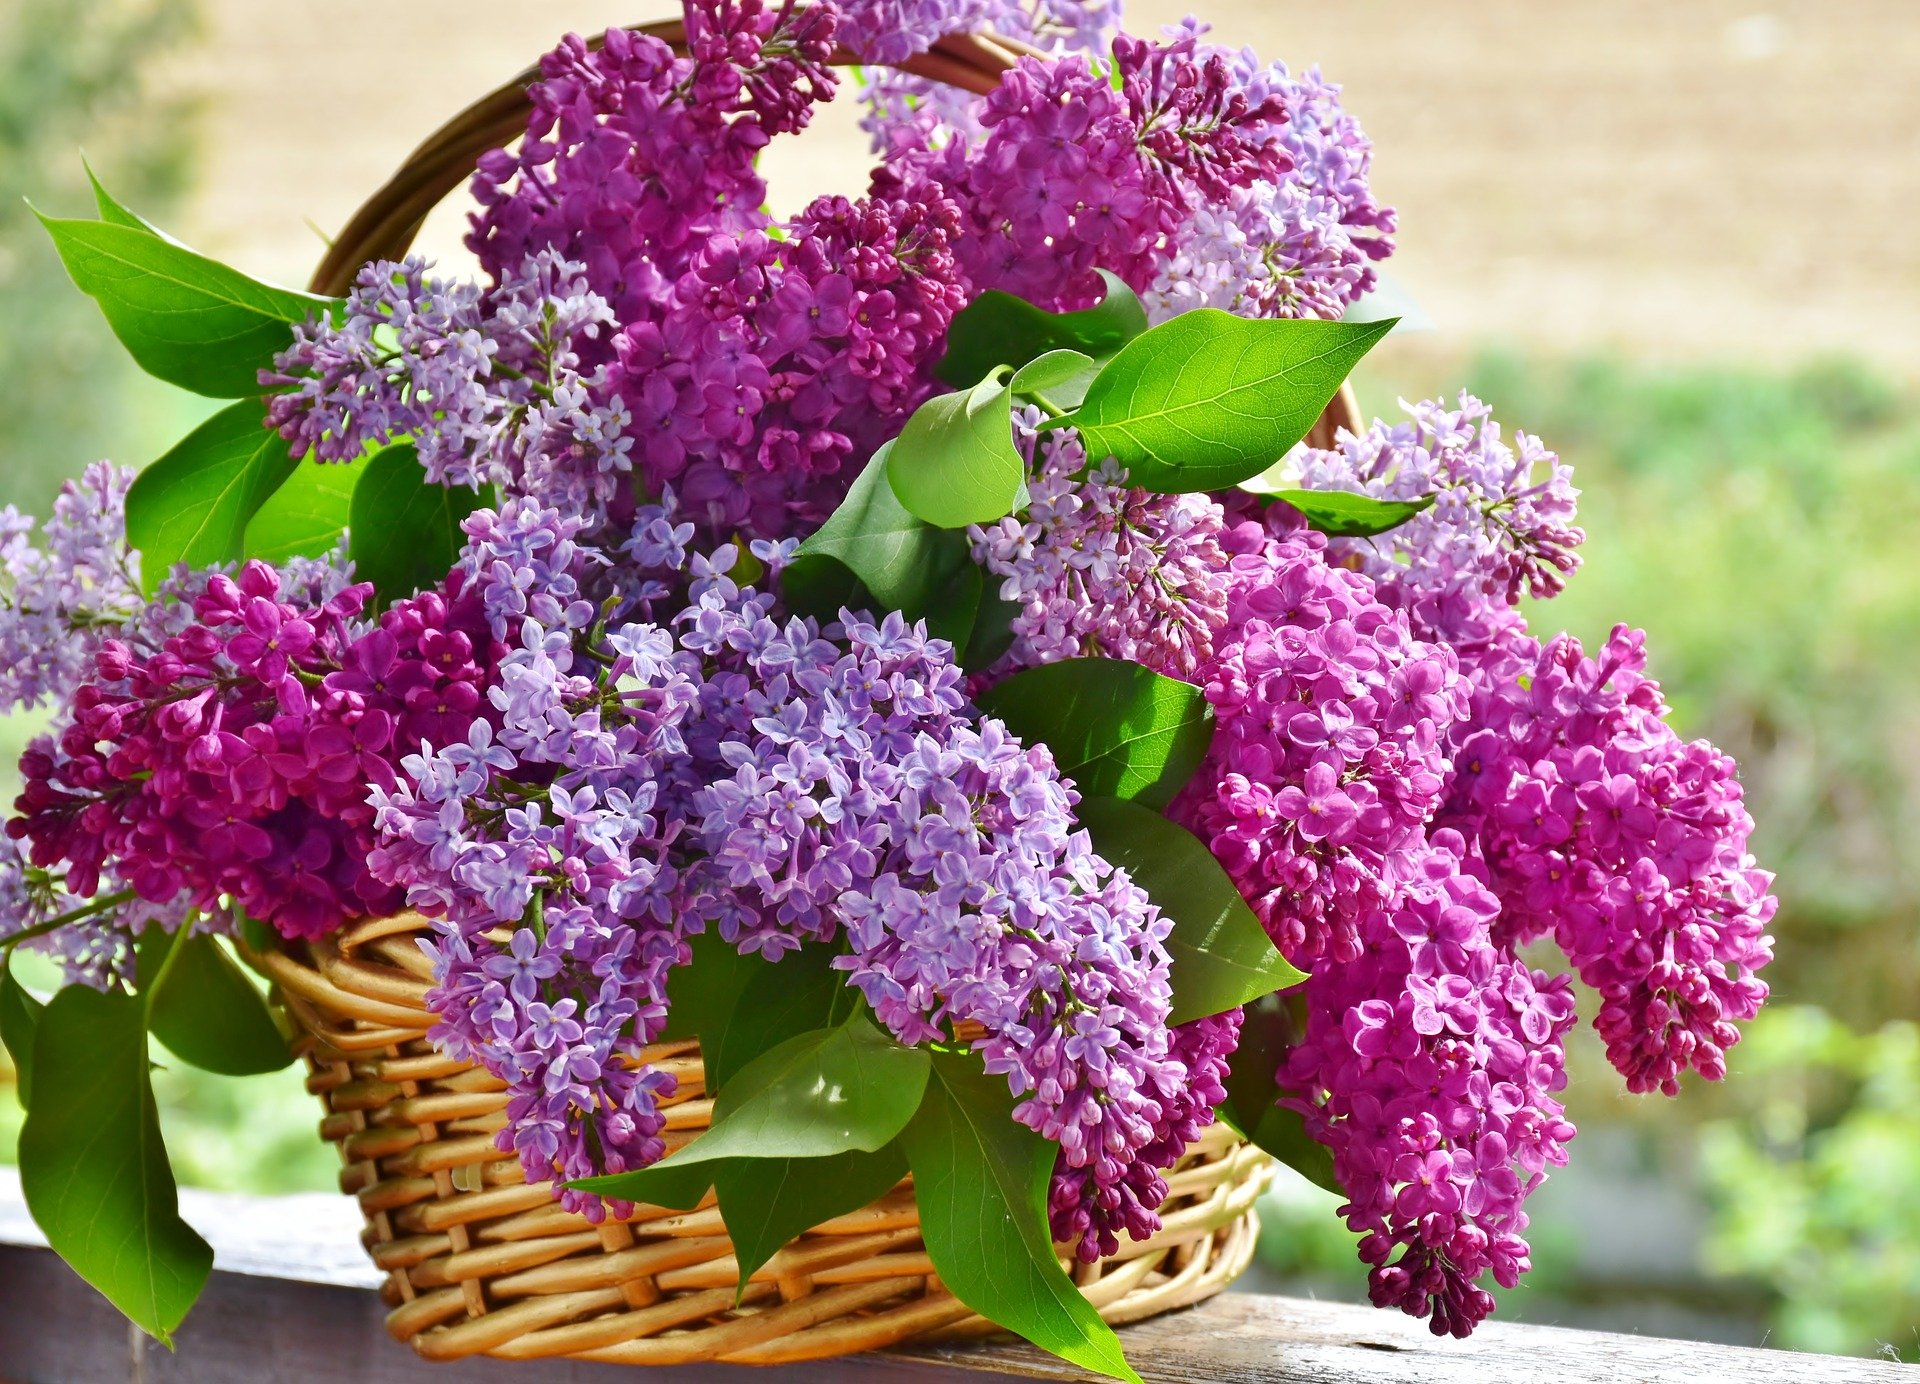 A basket filled with lilac blooms in two shades | Photo: Pixabay/RitaE